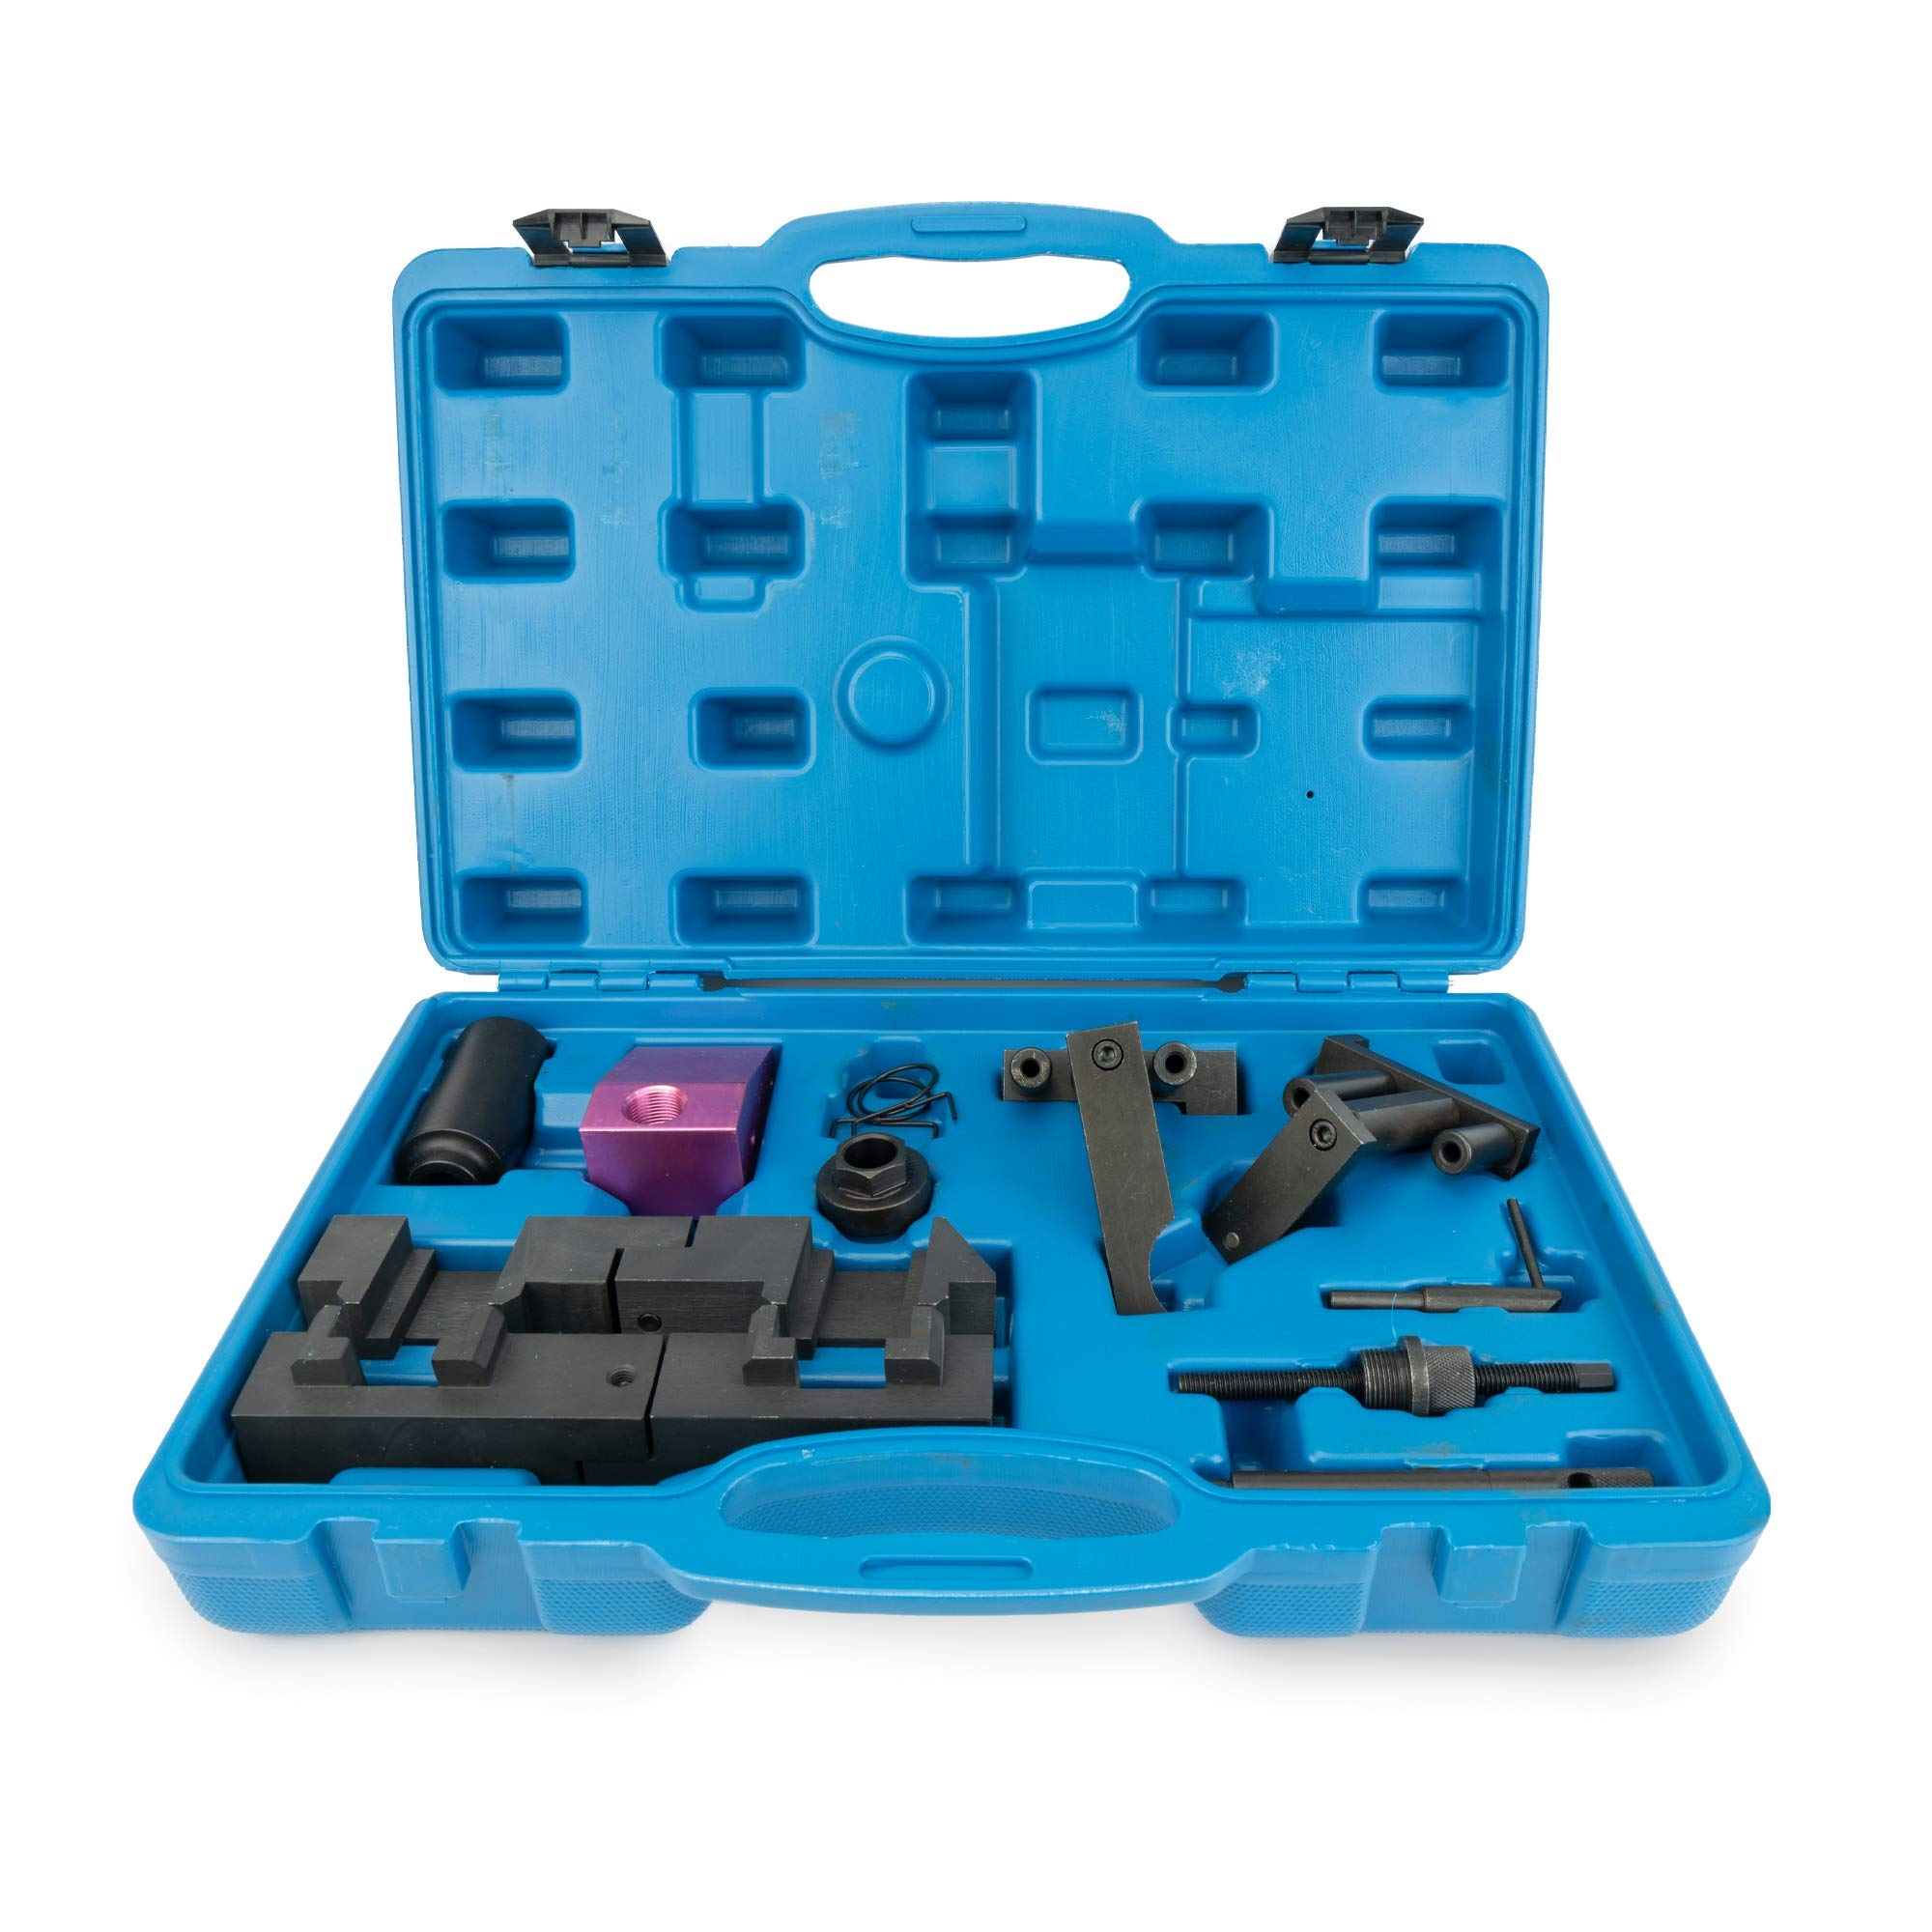 Variable Valve Timing Locking Tool Kit - Compatible With BMW M60, M62 Engines - VANOS Electromagnetic Valve Camshaft Alignment - Pin, Tensioner, Socket, Trestle, Fixture, Locking Tool & Springs by Delray Auto Parts (Image #1)